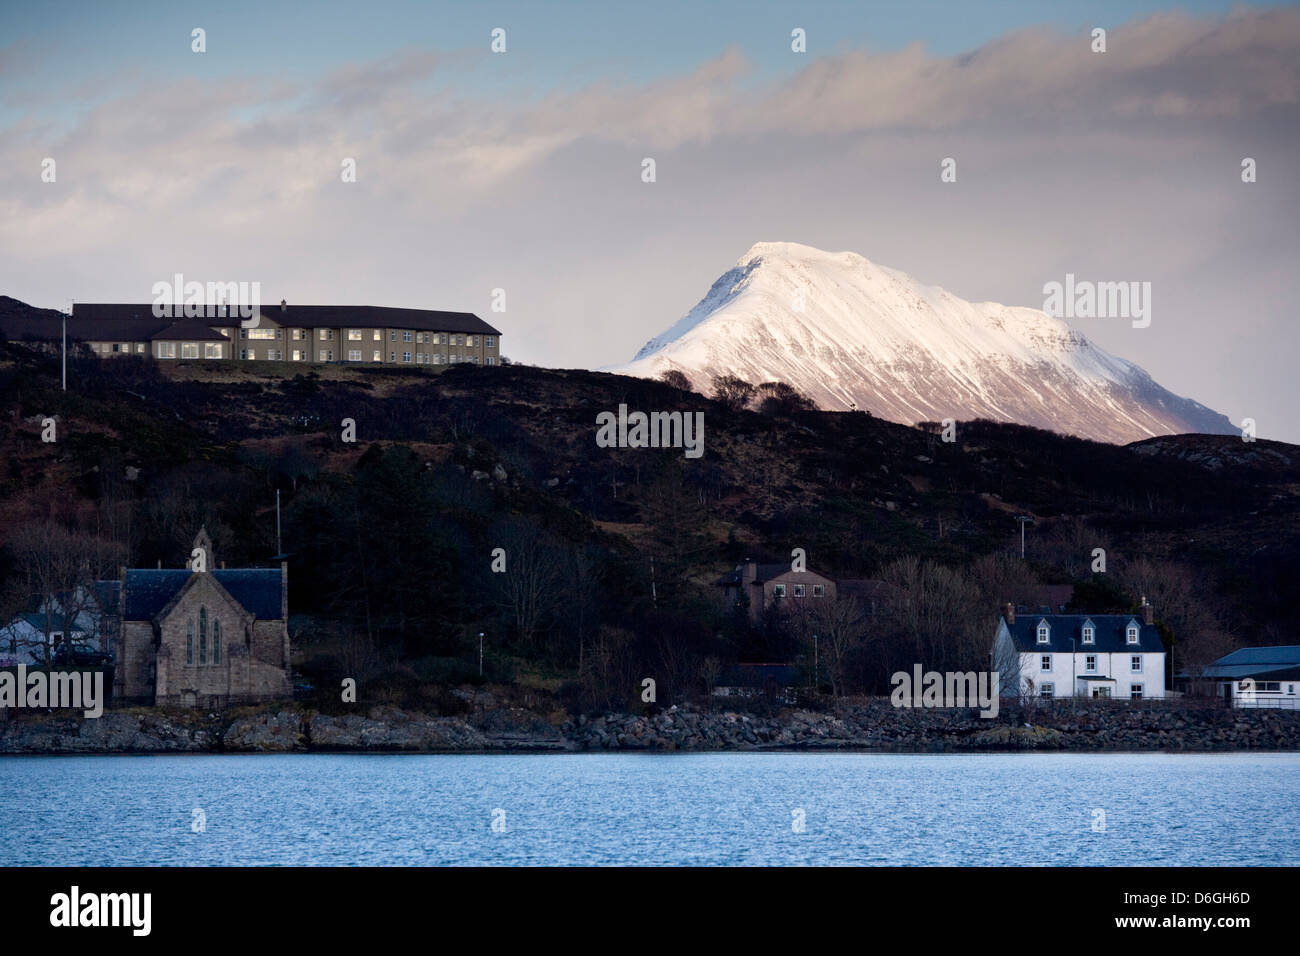 Chez Roux Restaurant on top of the hill Lochinver with the mountain Canisp in the background. - Stock Image